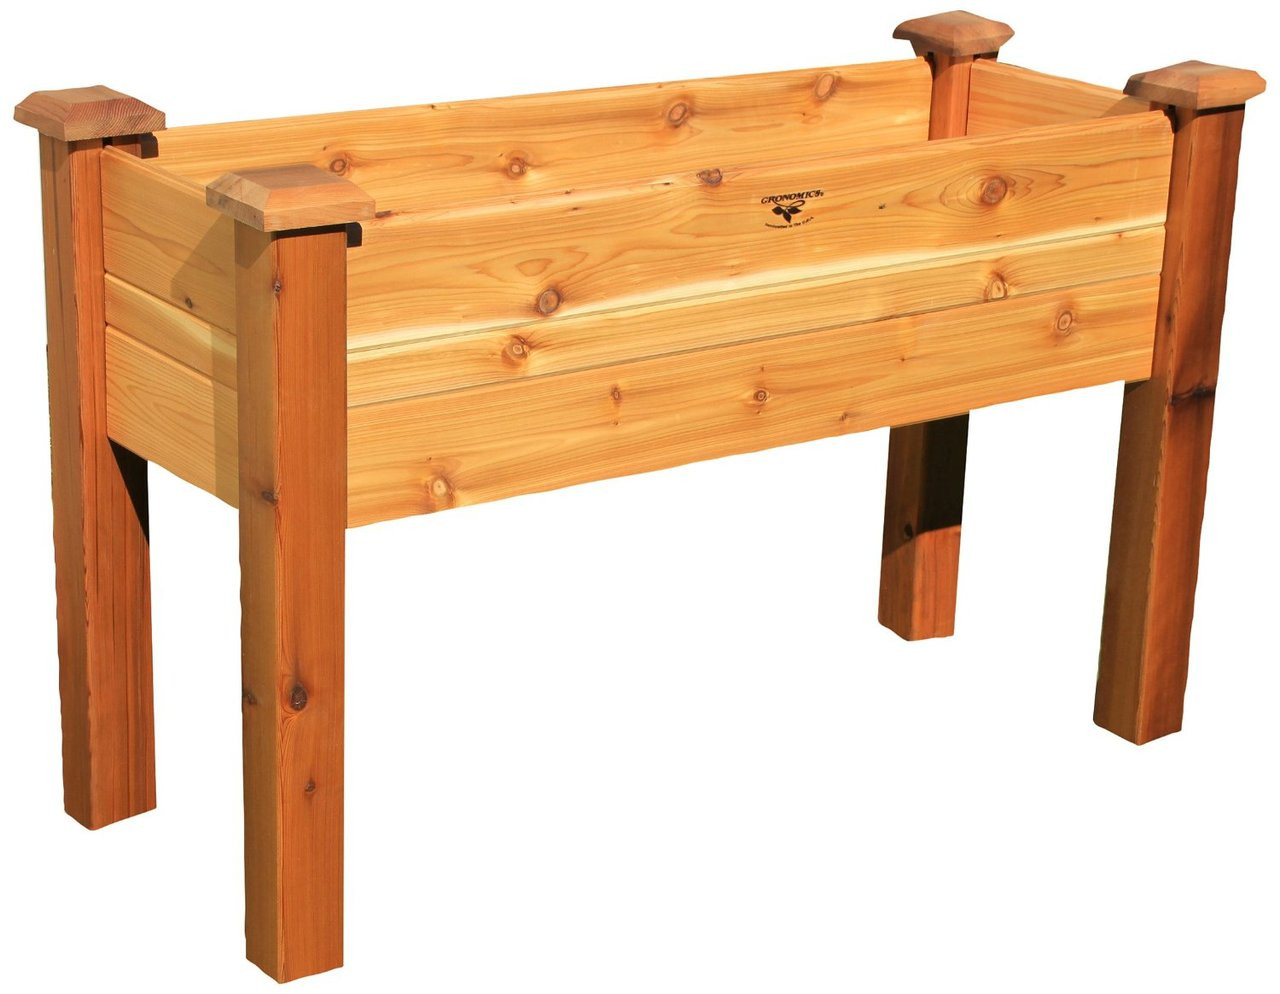 Gronomics-Elevated-Garden-Bed-18x48x32-Safe-Finish